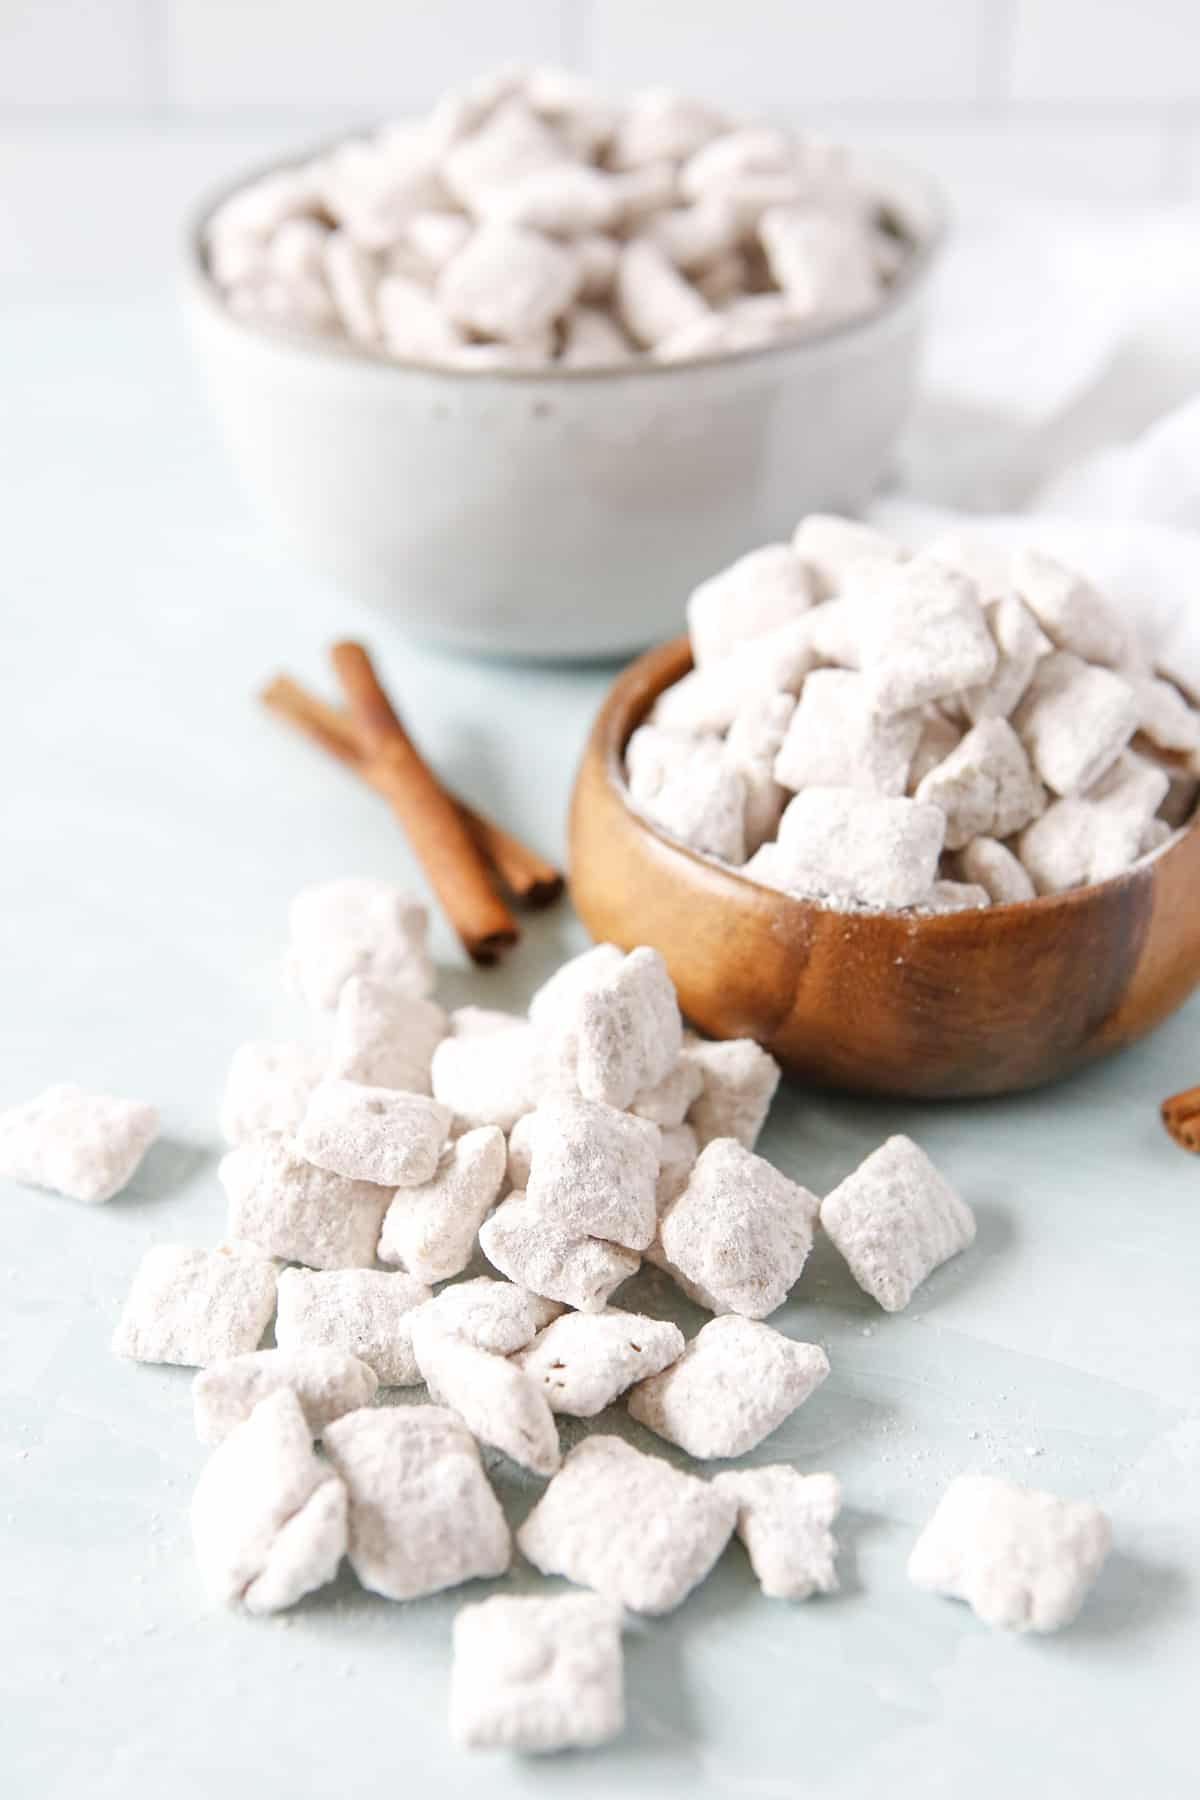 Small wooden bowl of Snickerdoodle Puppy chow with some laying in front of it